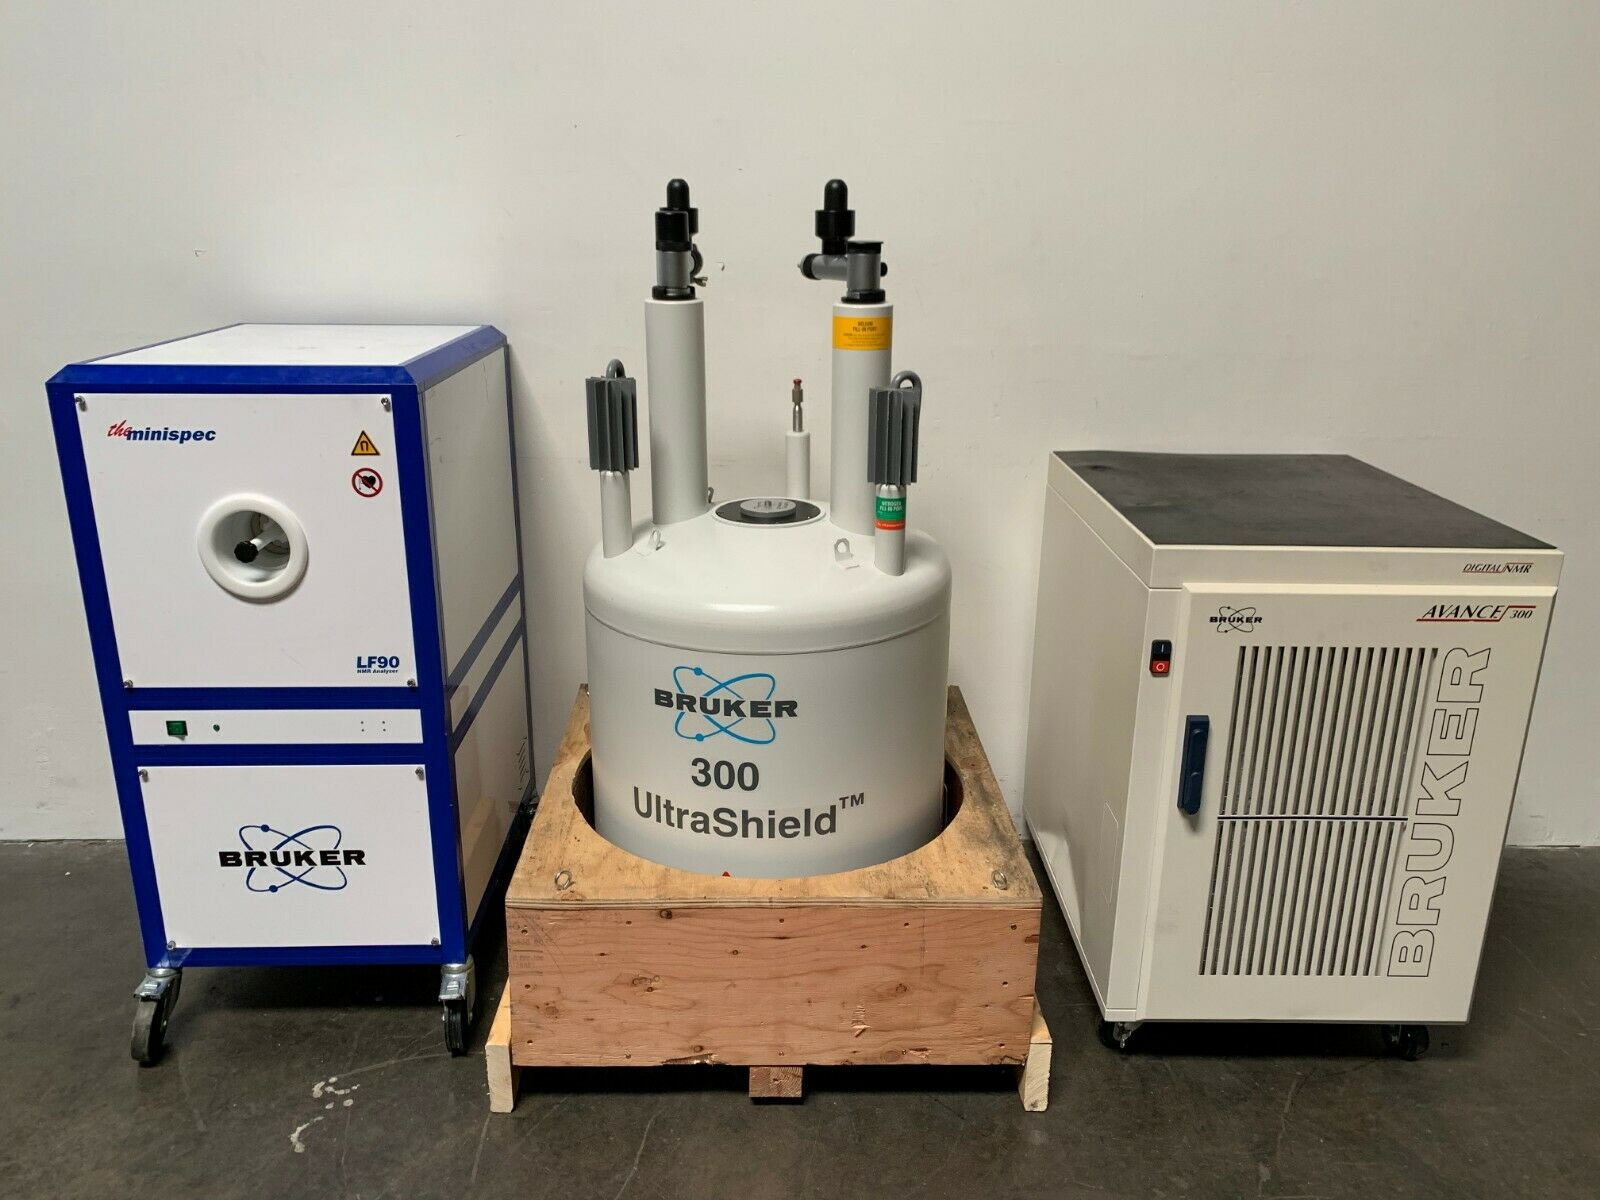 Bruker Mq20 Minispec Nmr Analyzer For Sale Online Ebay